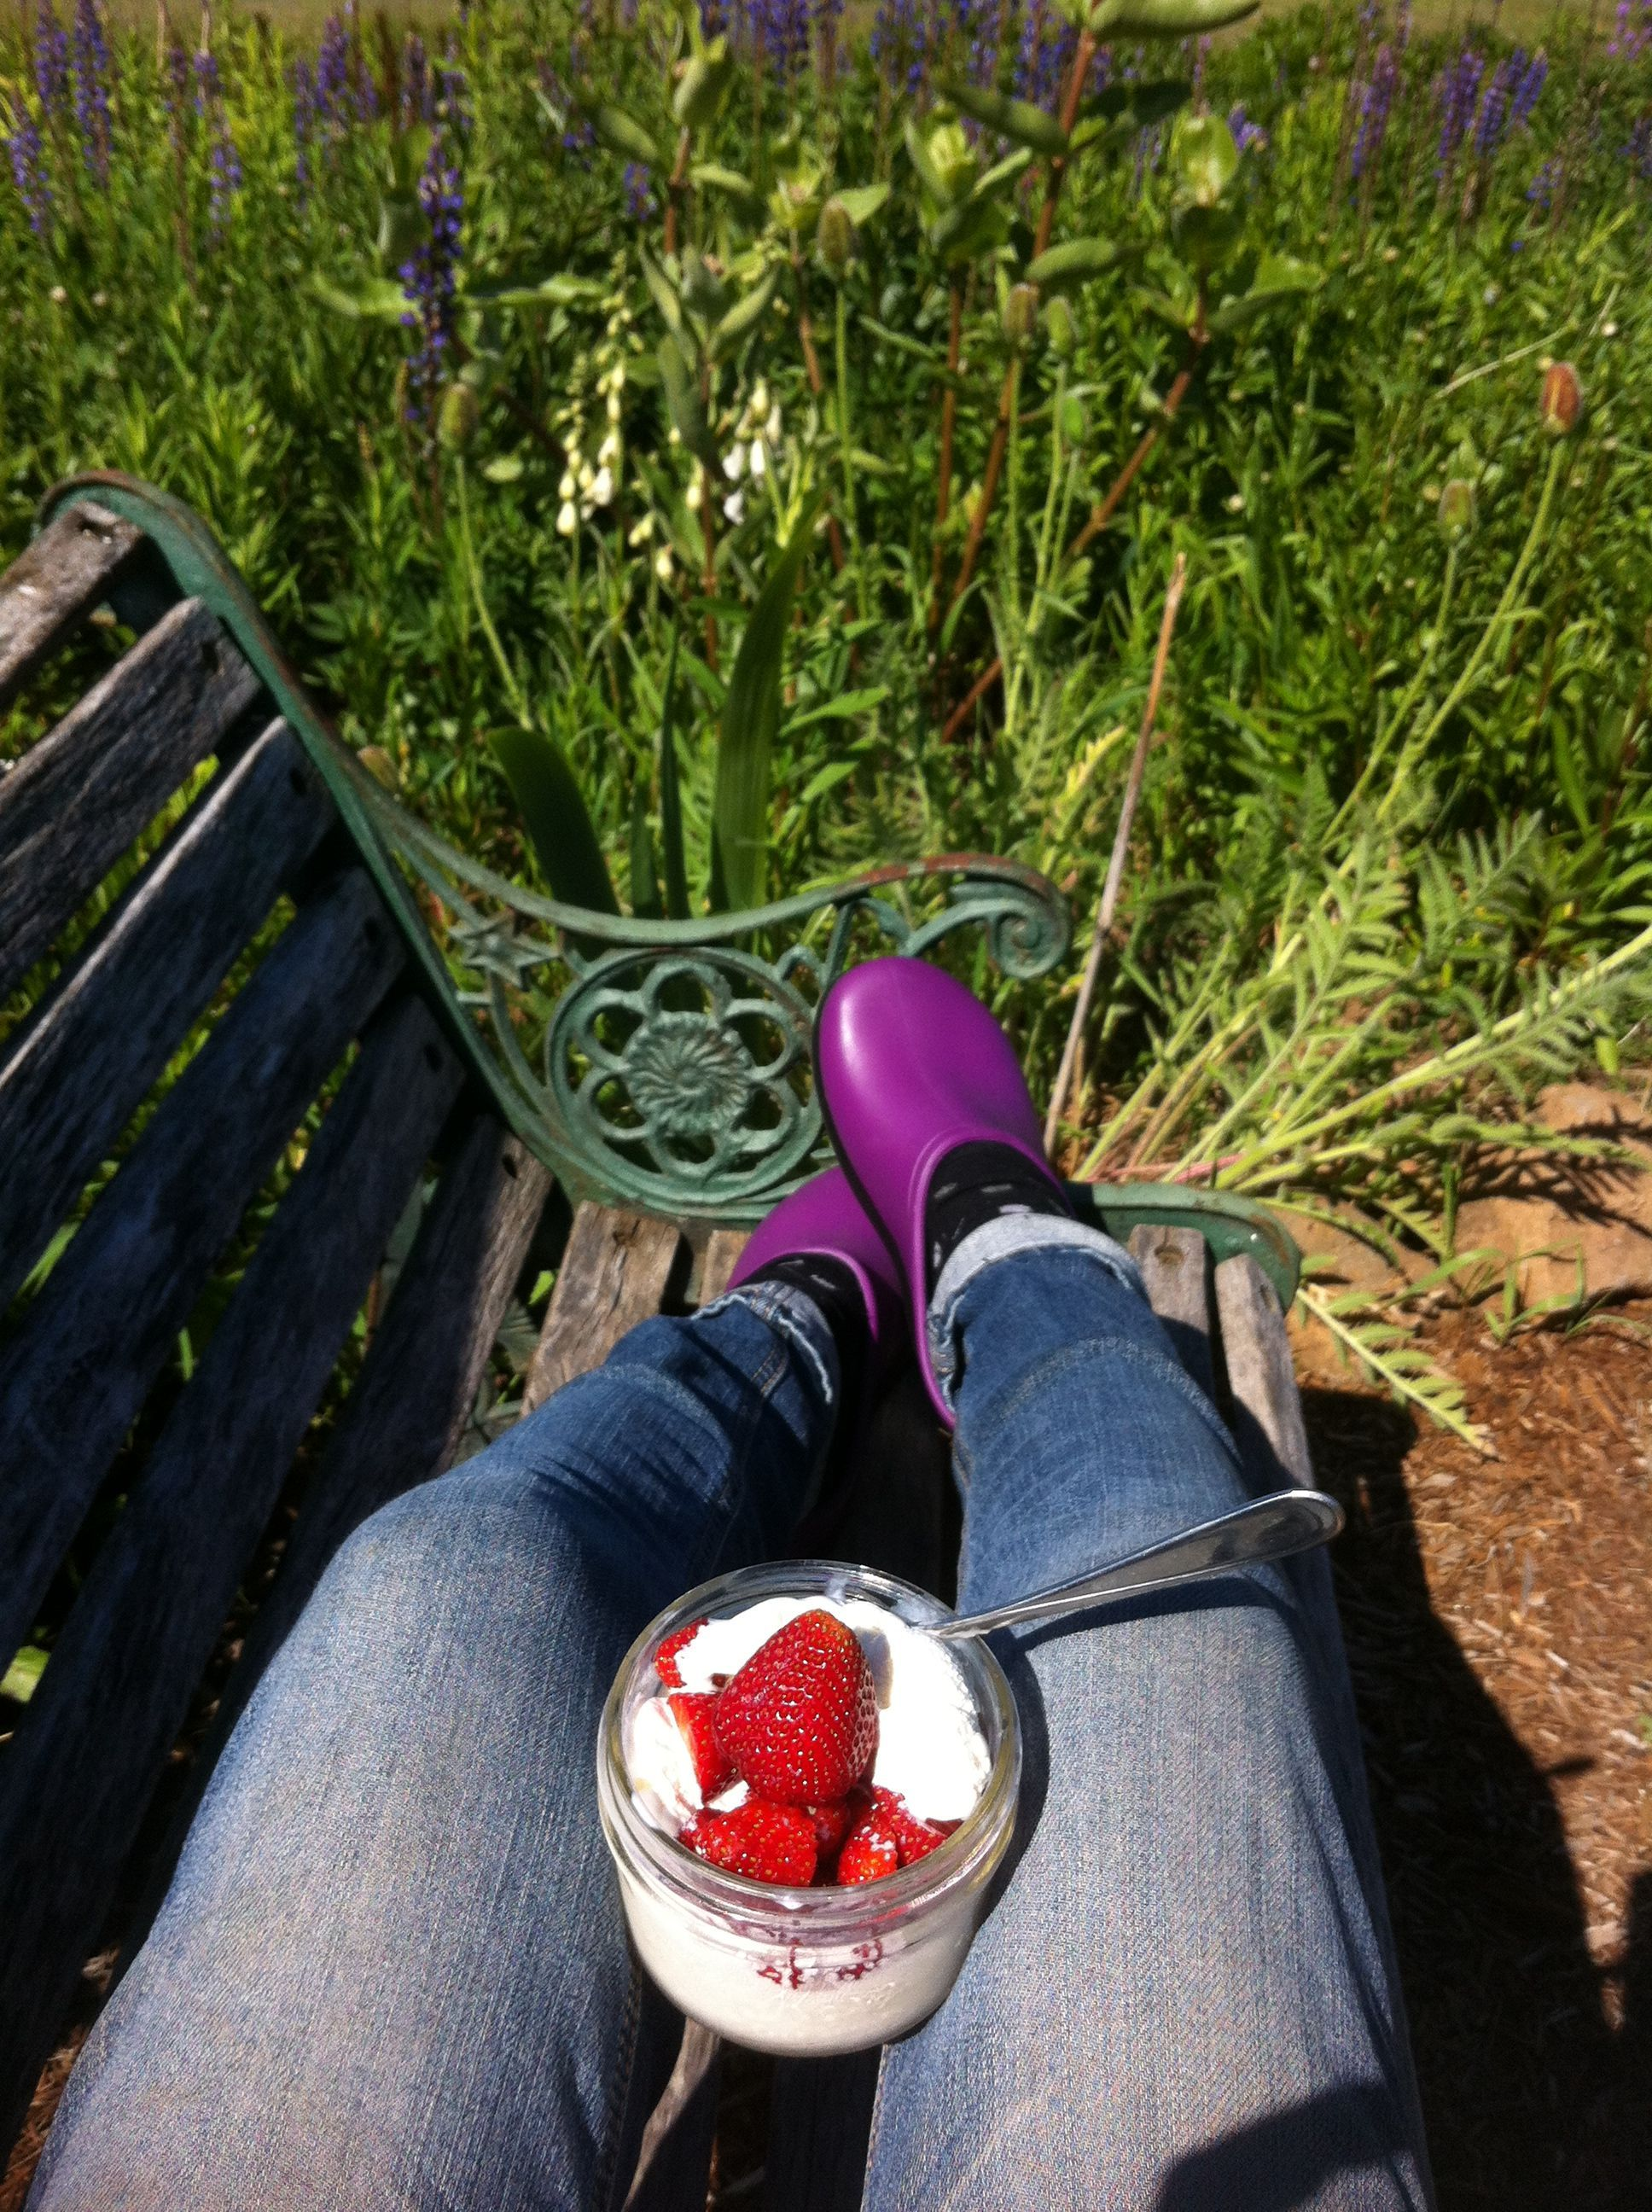 Break Time. Time to relax & put my feet up. Love Summer on the lavender farm, sunshine & Strawberries!!